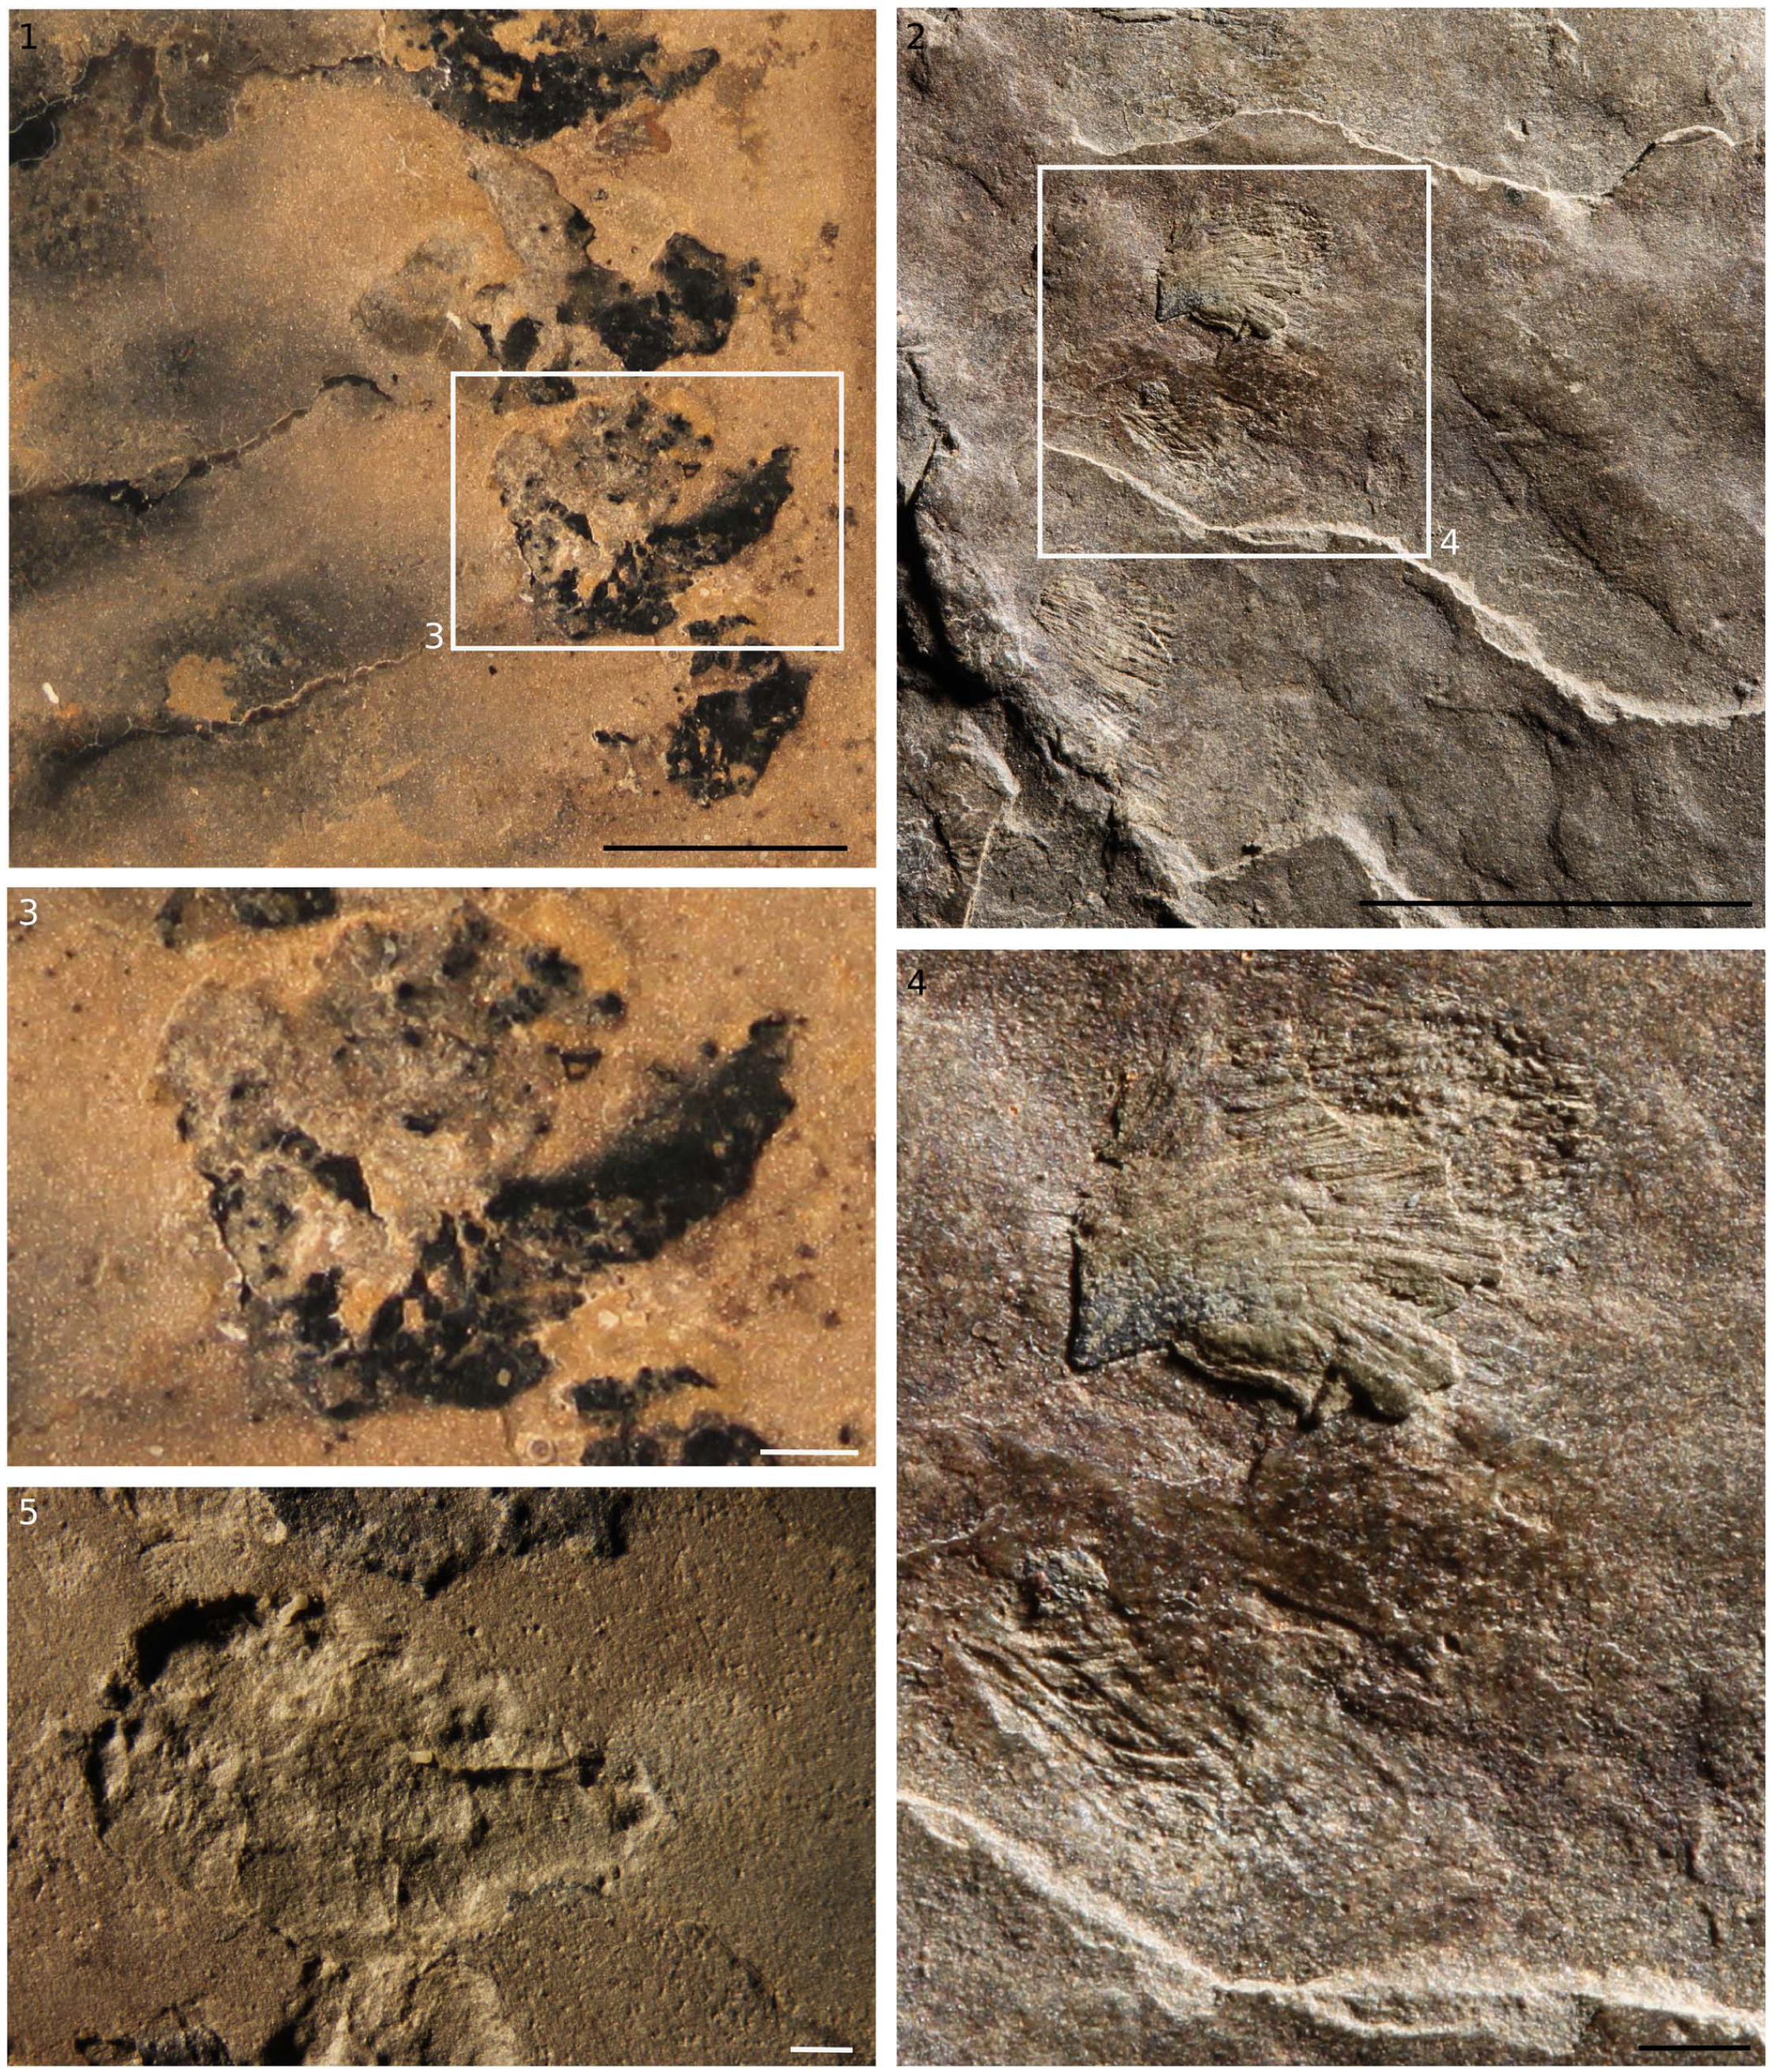 Hurdiid radiodontans from the middle Cambrian (Series 3) of Utah